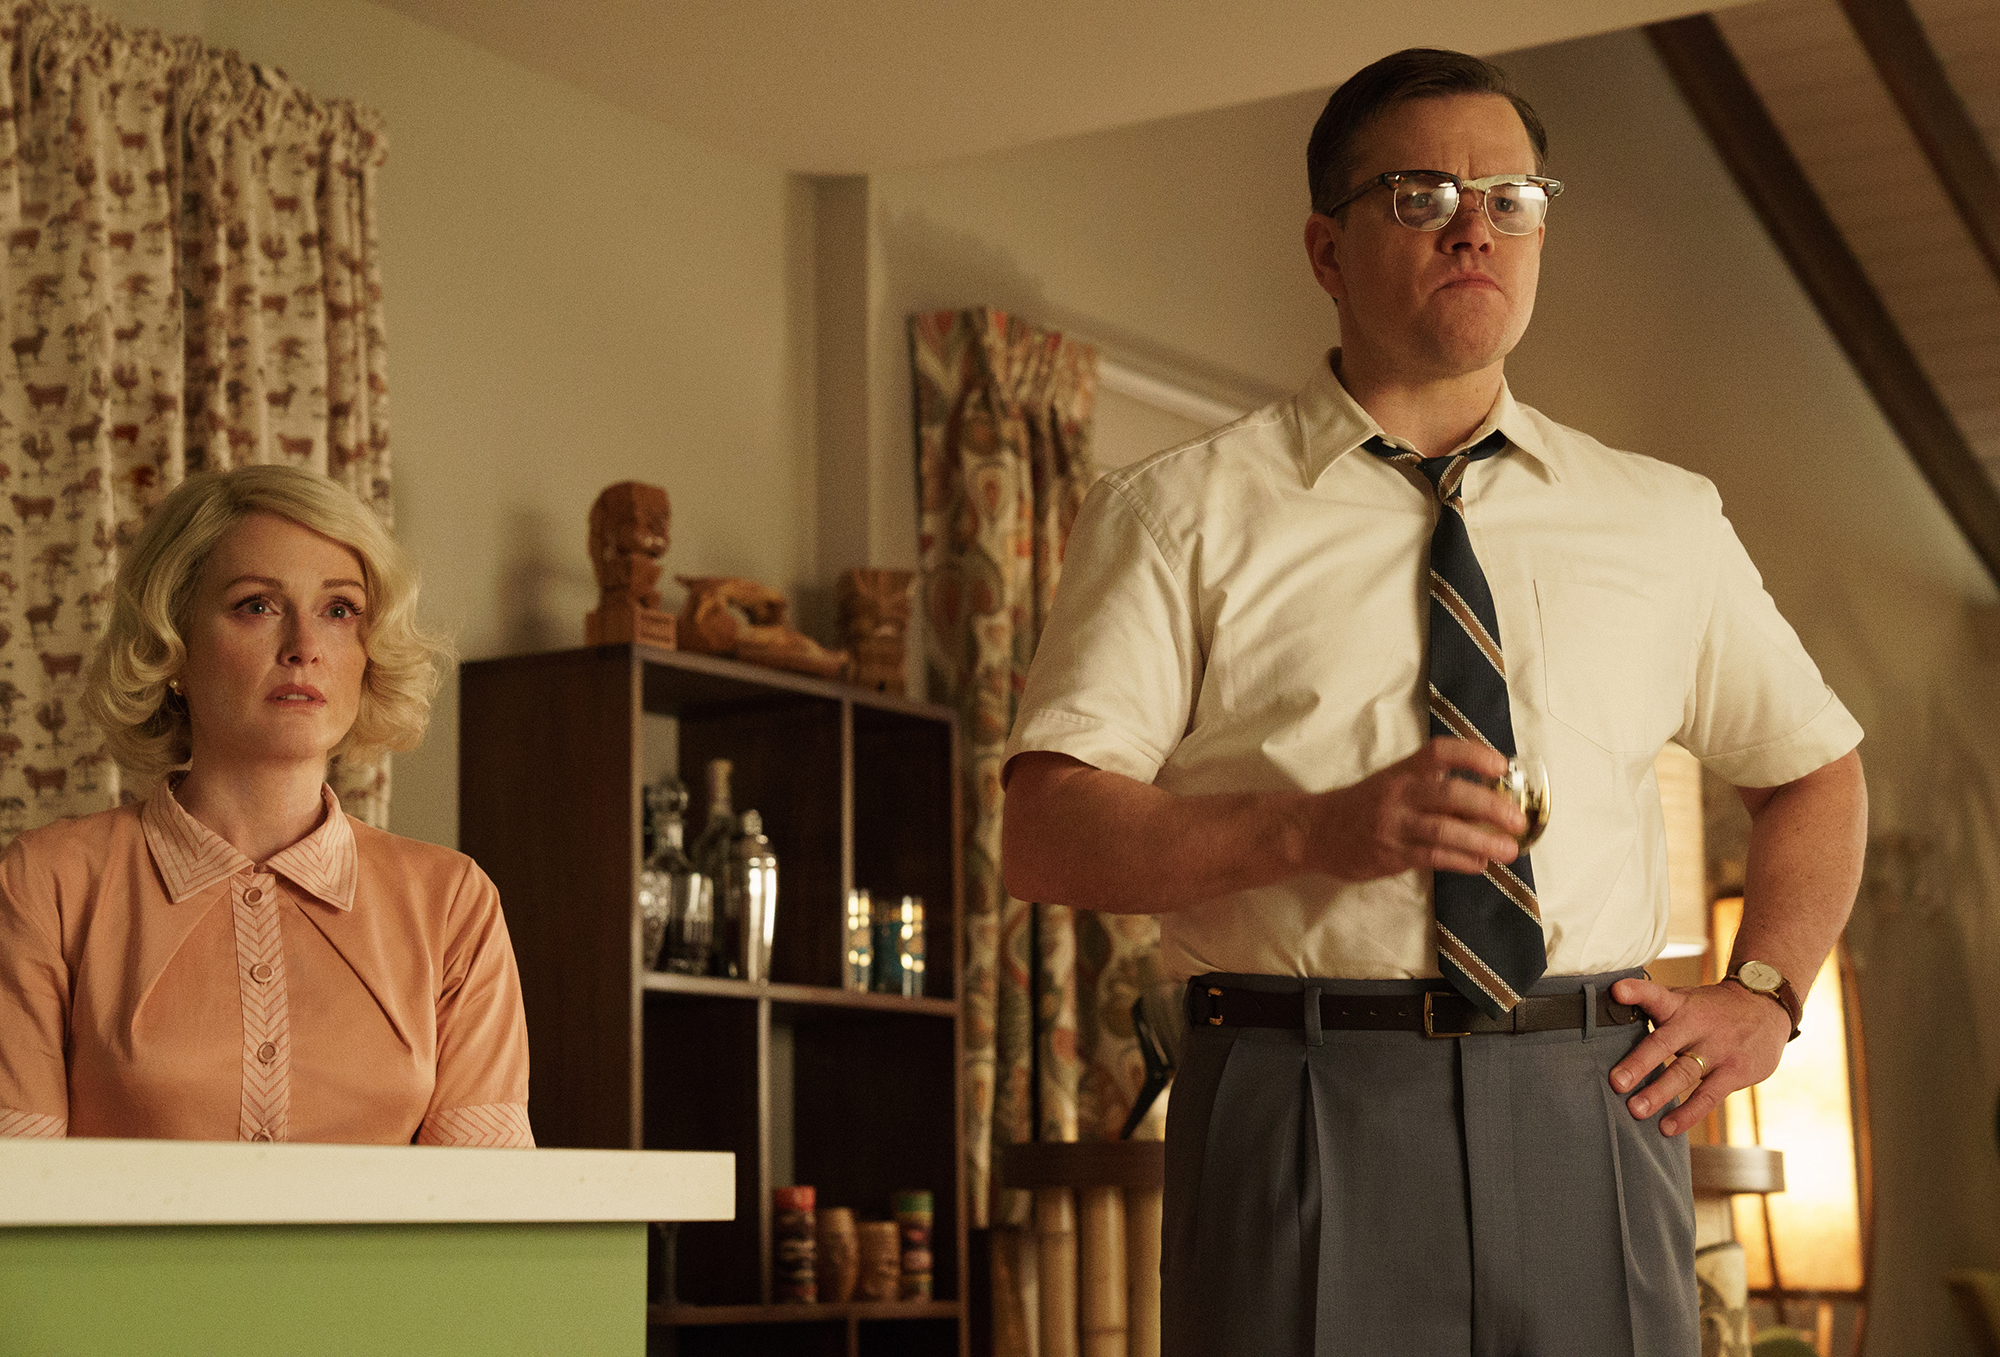 Left-to-right-Julianne-Moore-as-Margaret-and-Matt-Damon-as-Gardner-in-SUBURBICON-from-Paramount-Pictures-and-Black-Bear-Pictures.